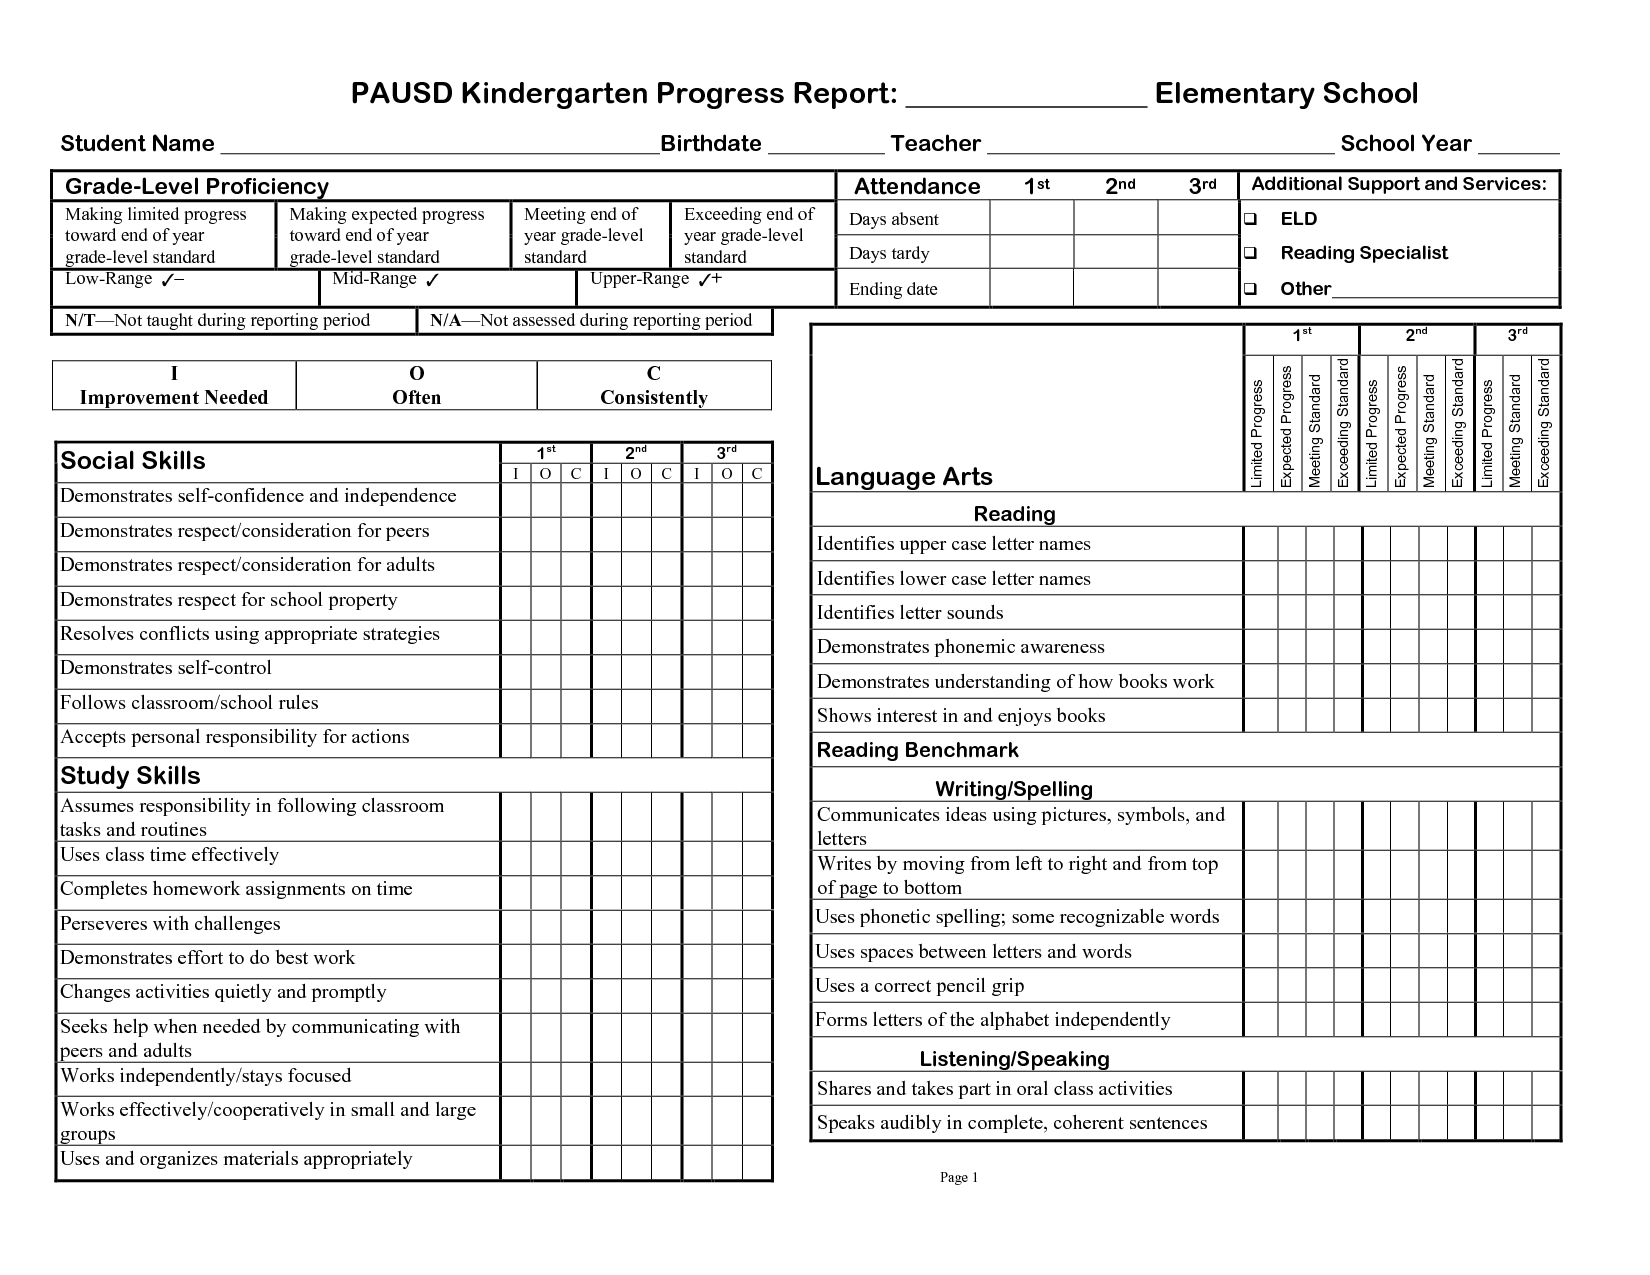 3rd Gradeprogress Report Template | PAUSD Kindergarten Progress Report  Elementary School  Progress Sheet Template